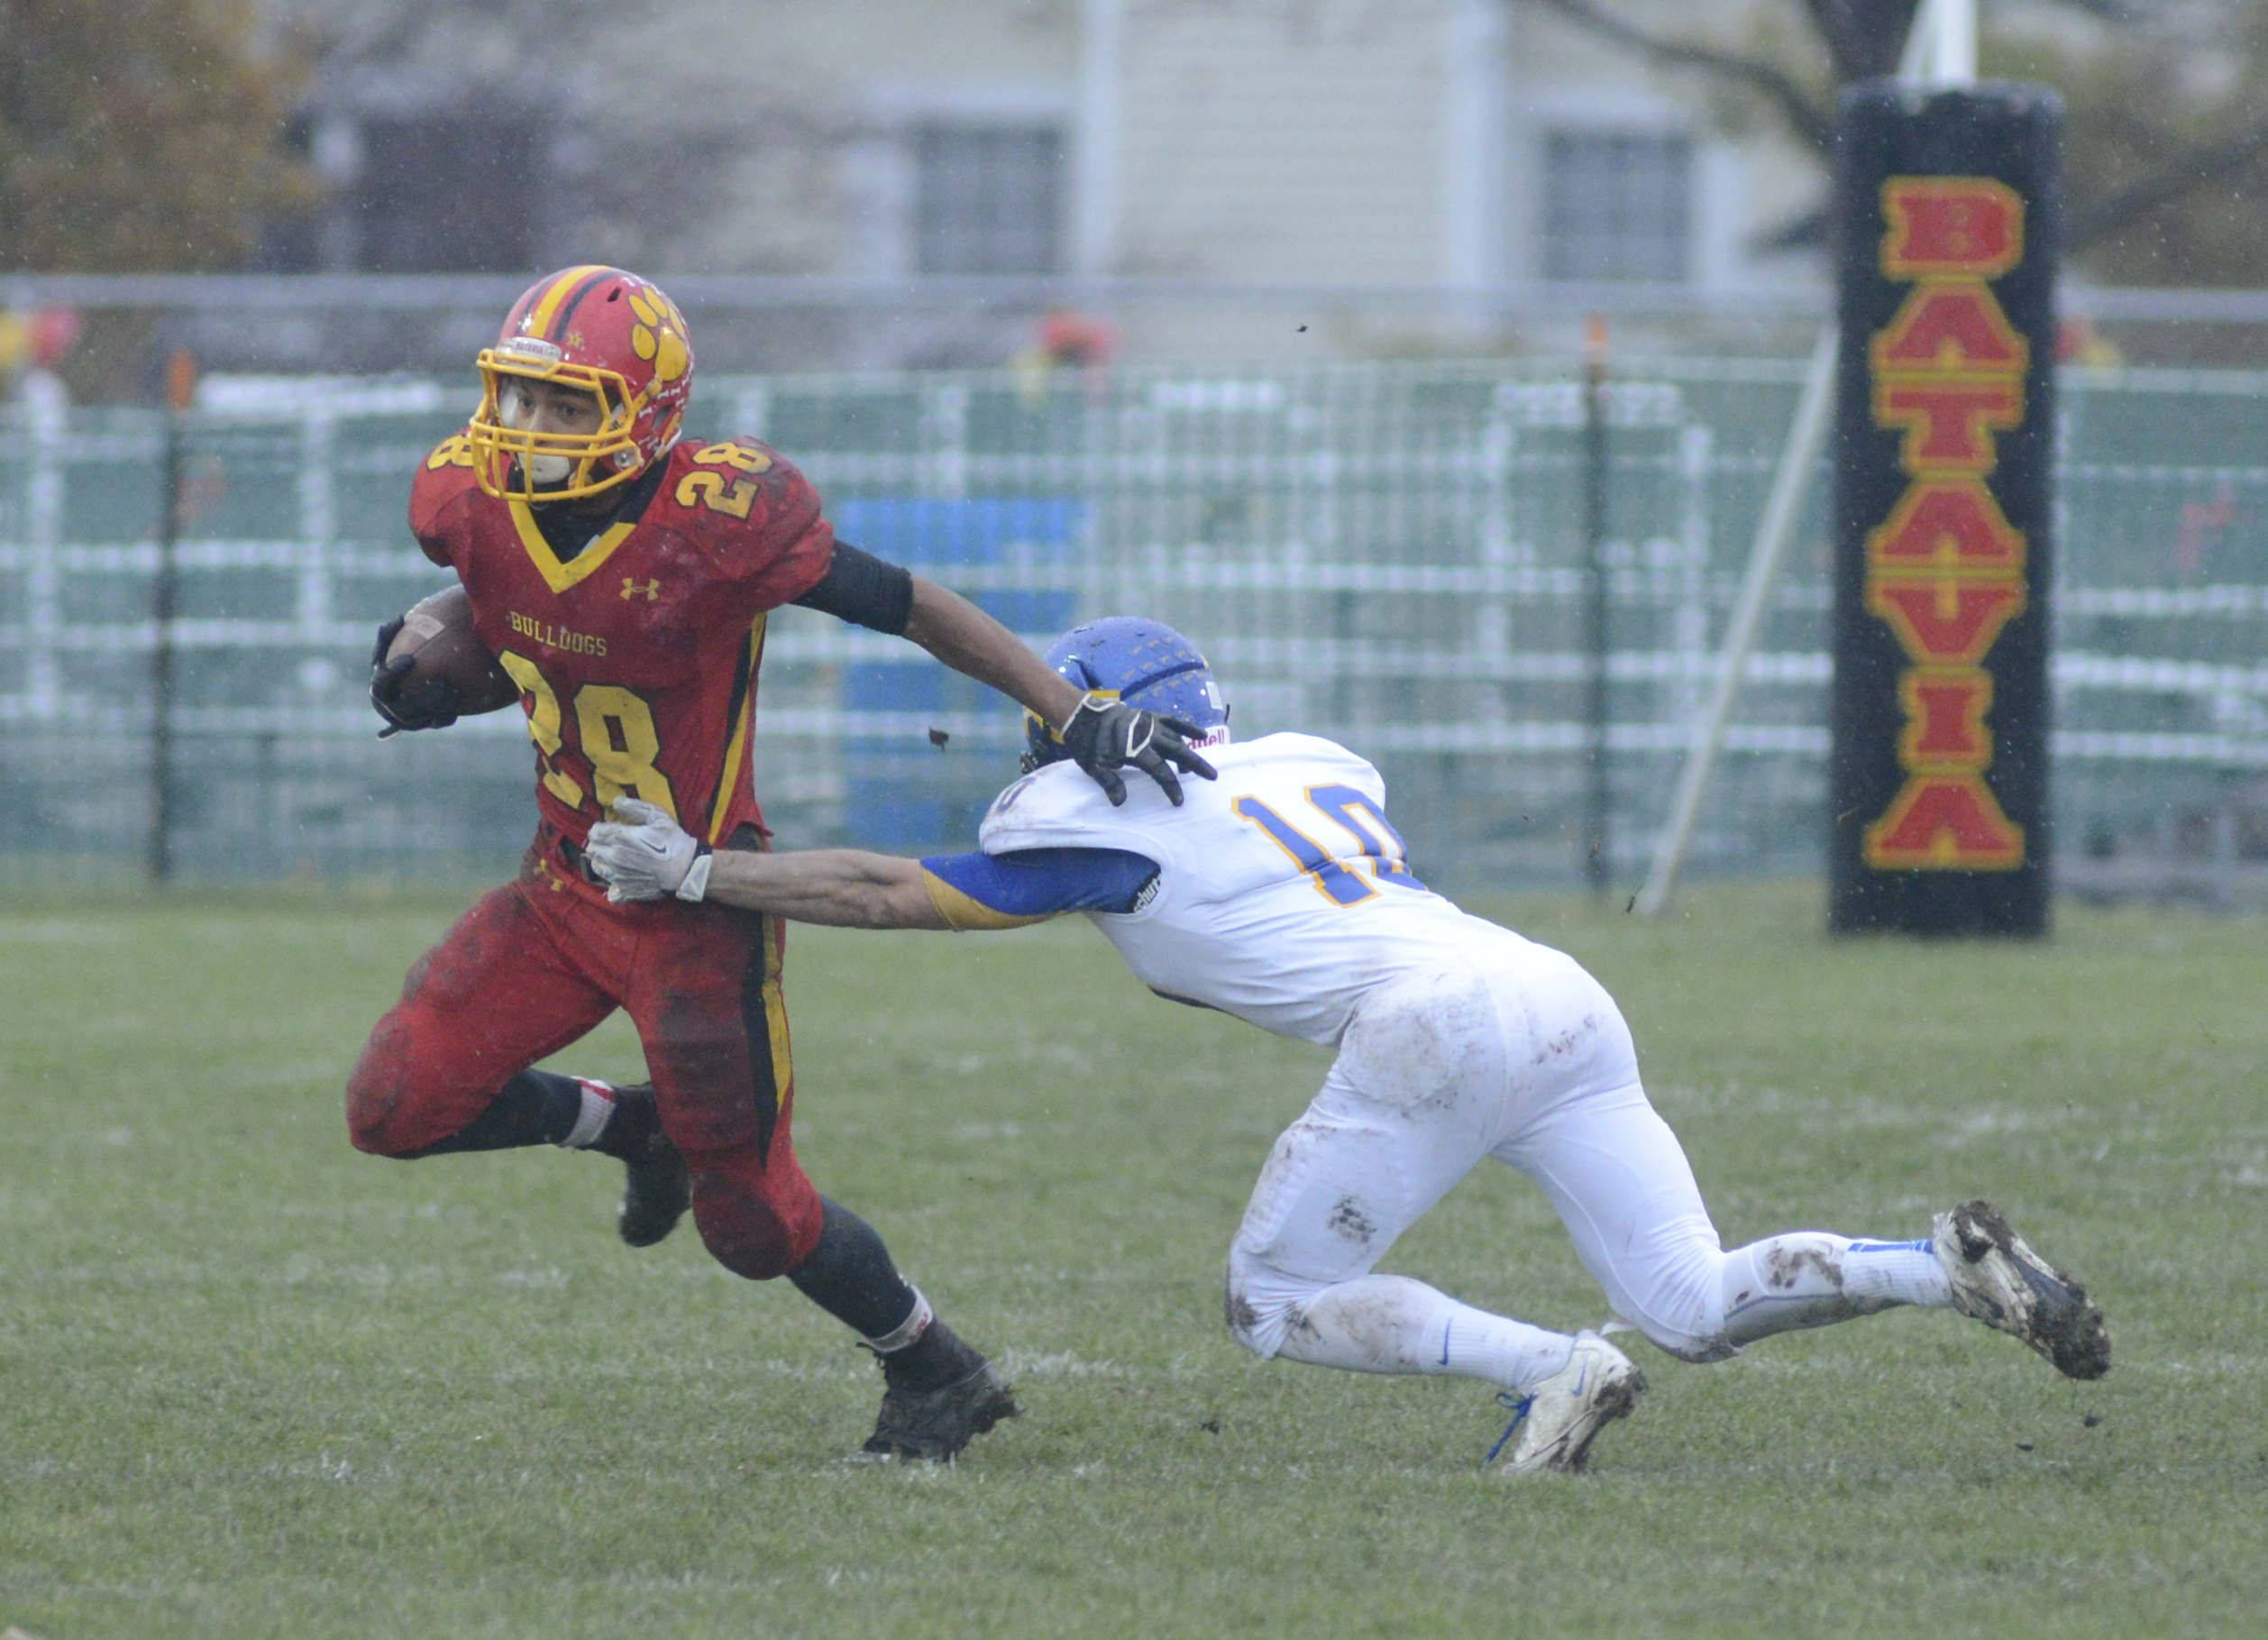 Batavia schools might seek voters' OK to borrow for sports field